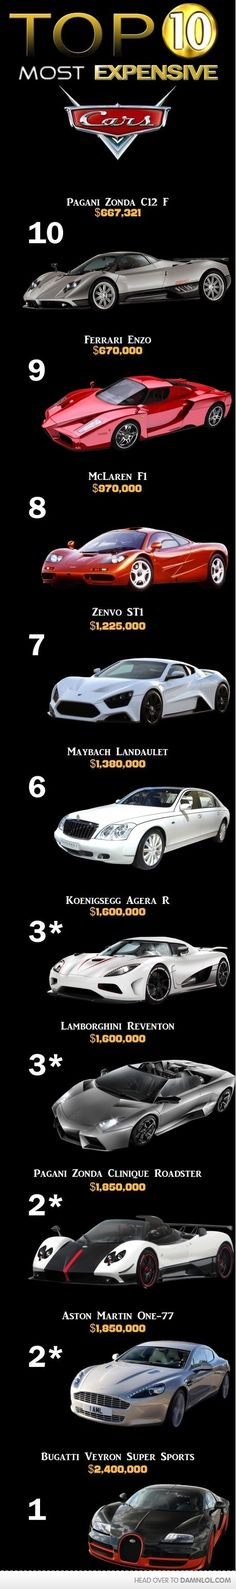 top 10 most expensive cars by edith.delacruz.948